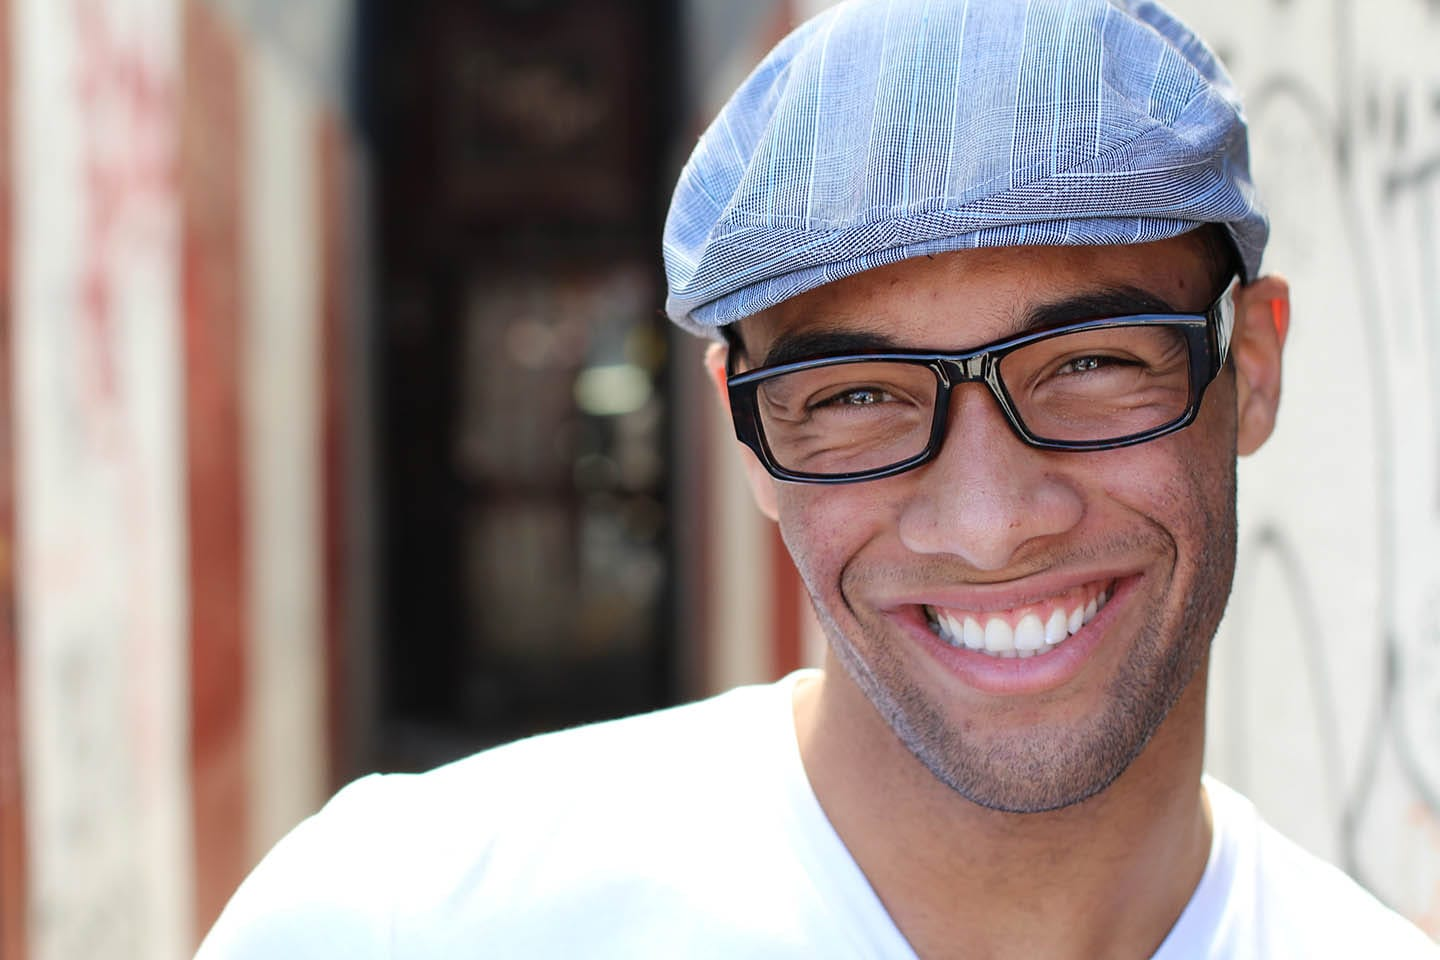 man wearing hat and glasses smiling